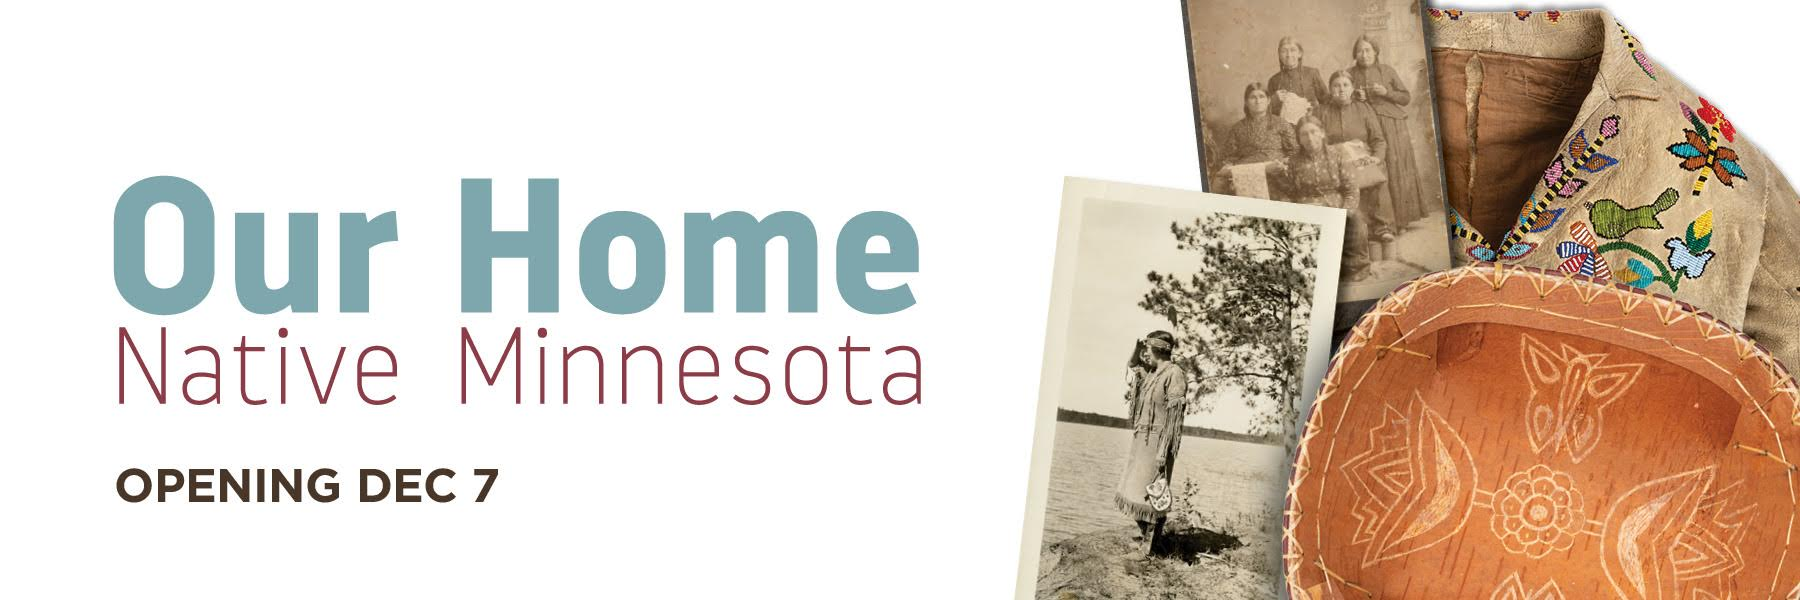 Our Home: Native Minnesota opening December 7.